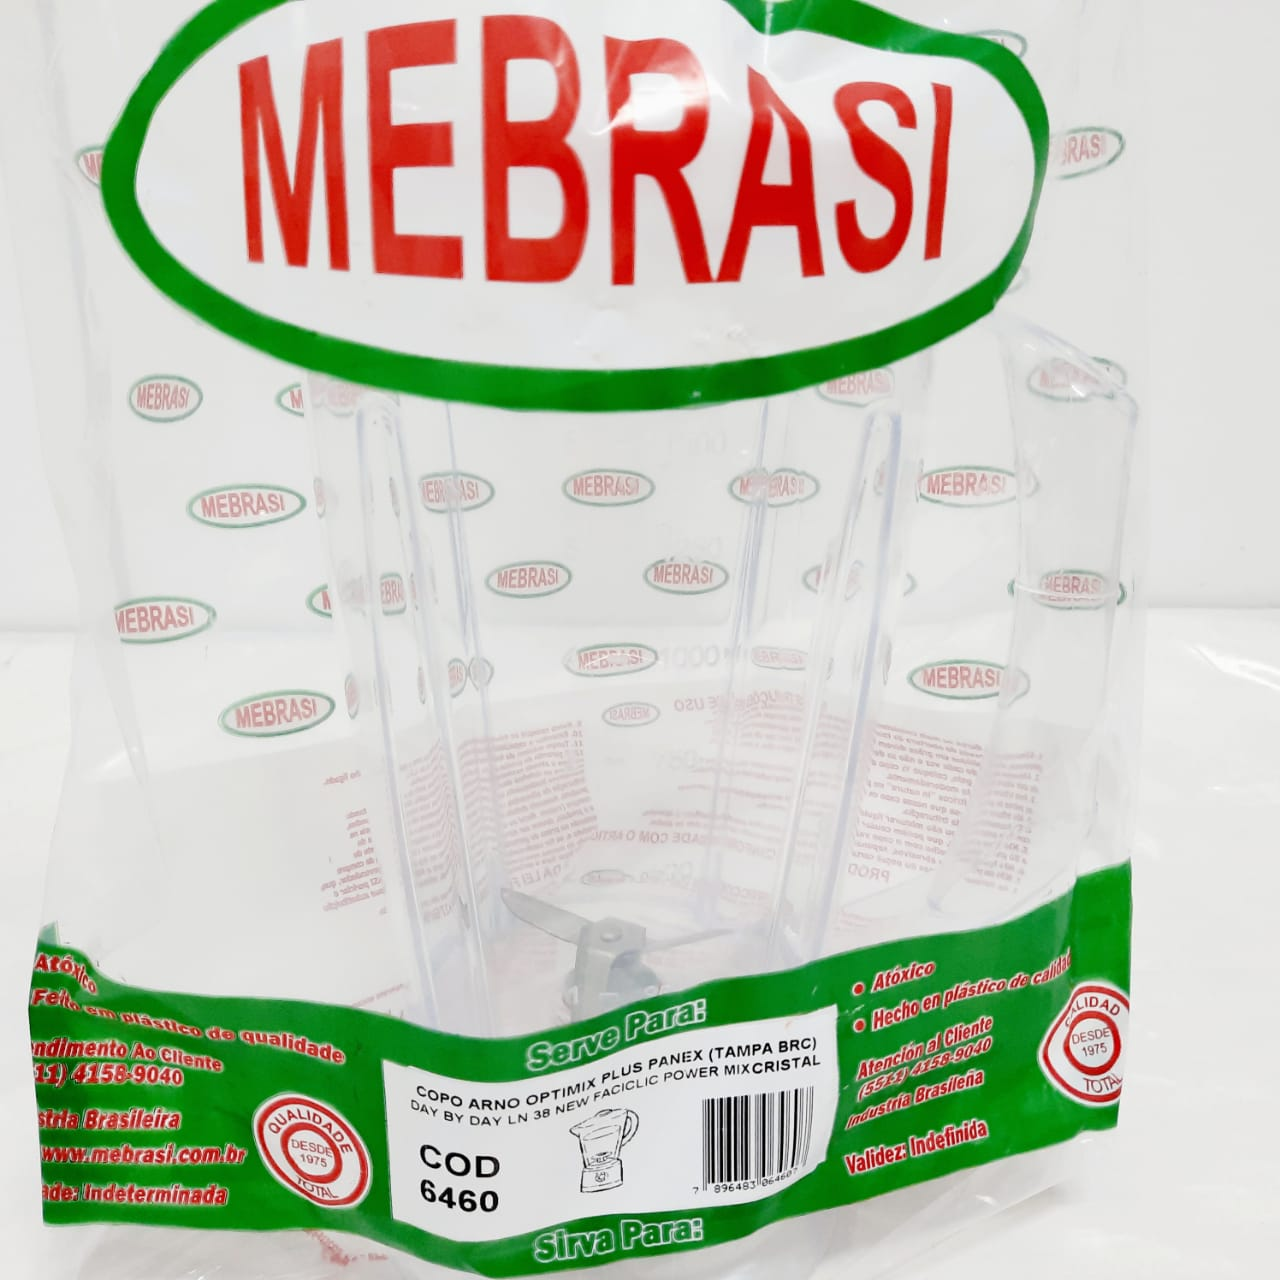 Copo Arno Cristal Optimix Plus - Mebrasi